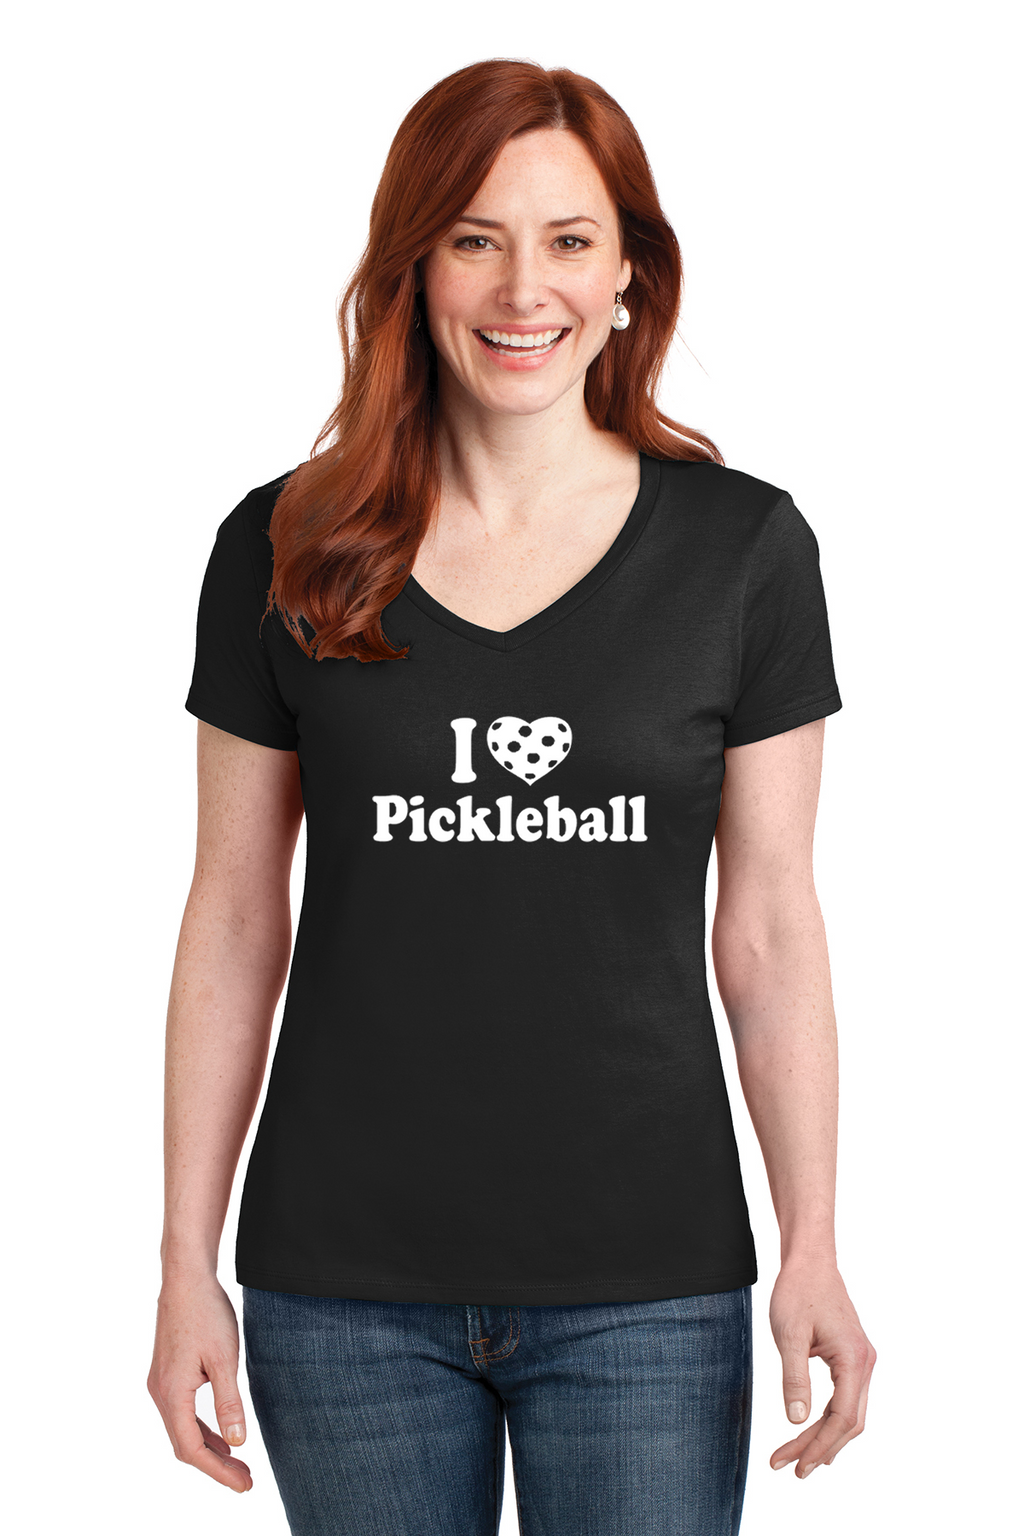 Ladies V-Neck 100% Cotton Short Sleeve Shirt 'I Love Pickleball'